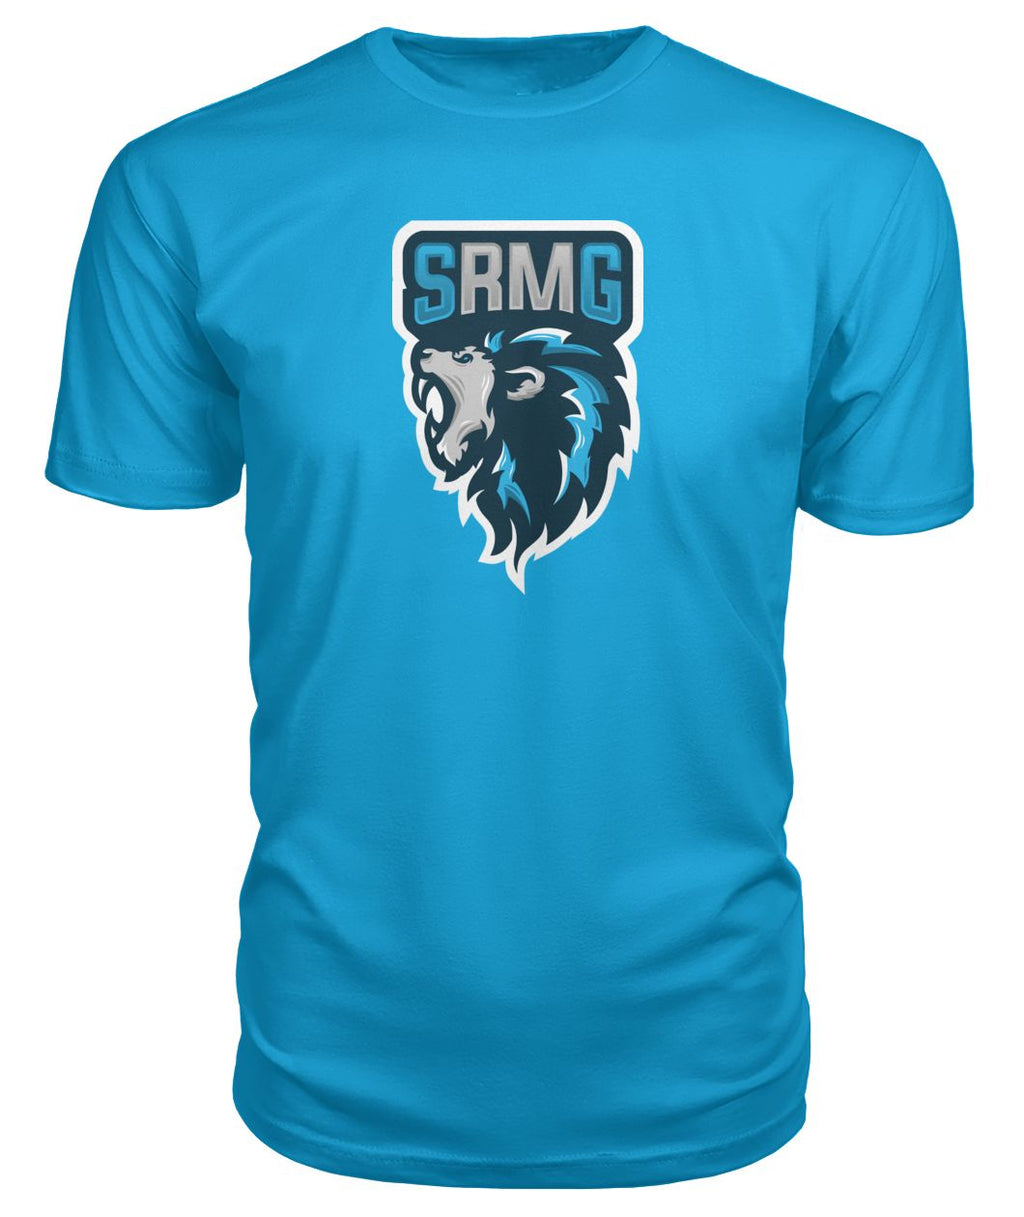 SRM Gaming Mascot Tee (5 Color Options)